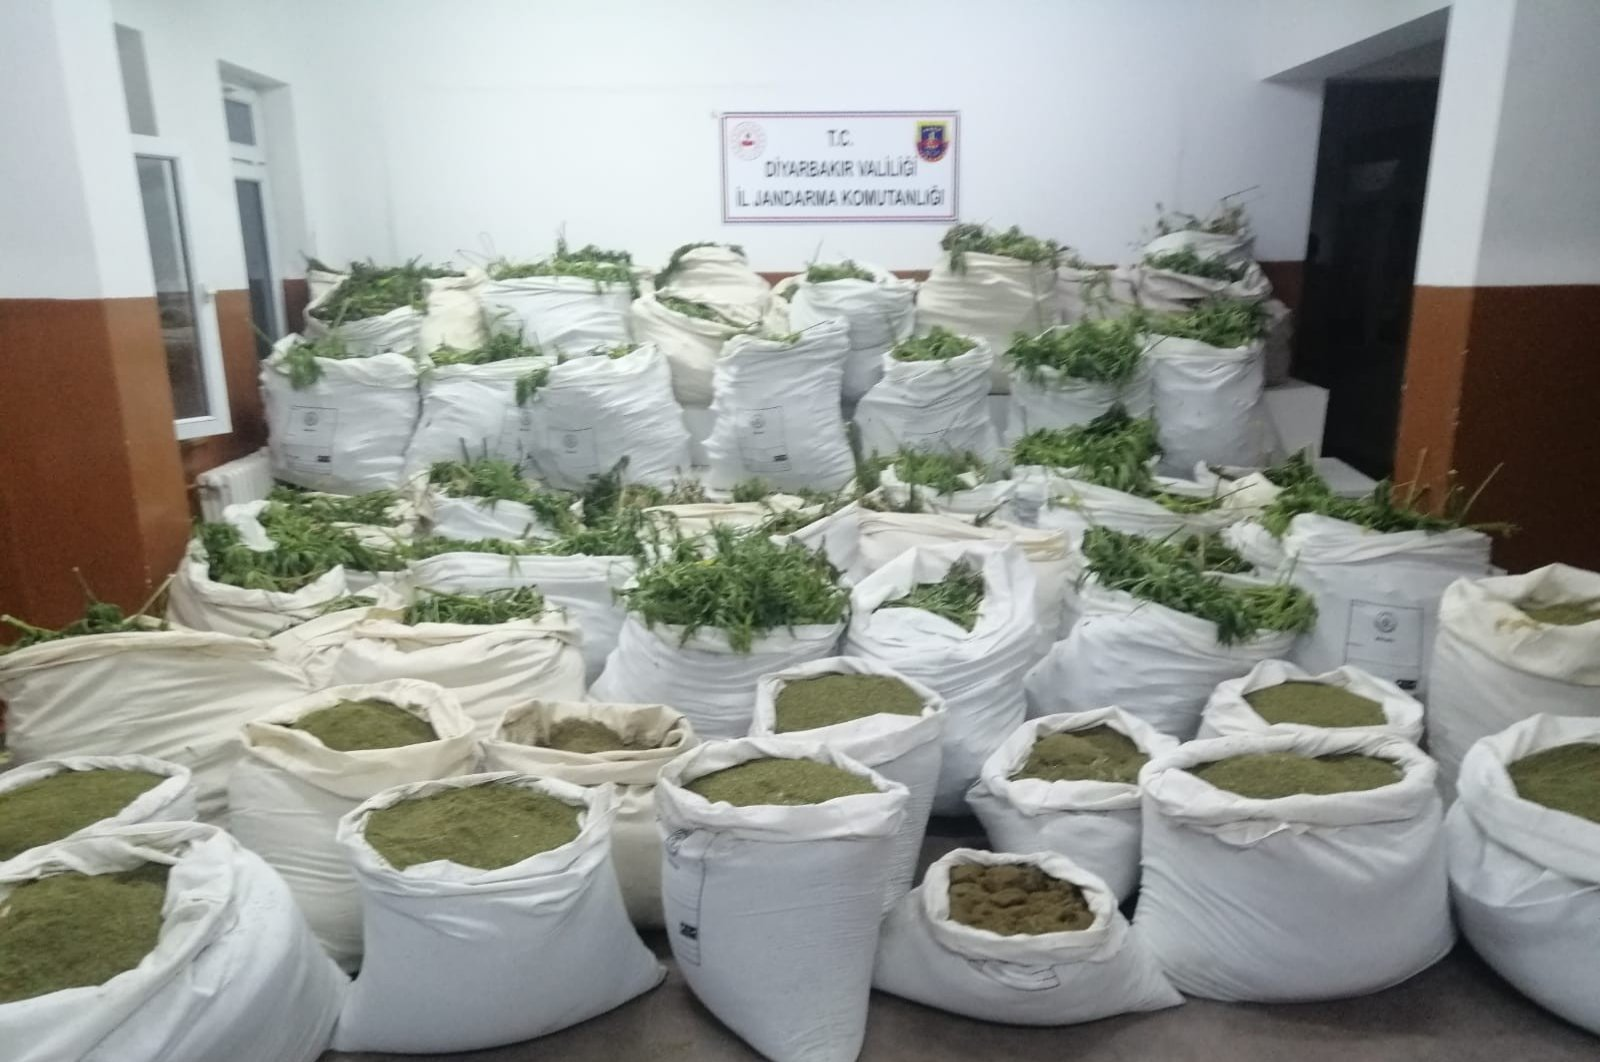 Seized marijuana on display at security forces headquarters in Diyarbakır, Turkey, June 22, 2020. (IHA Photo)